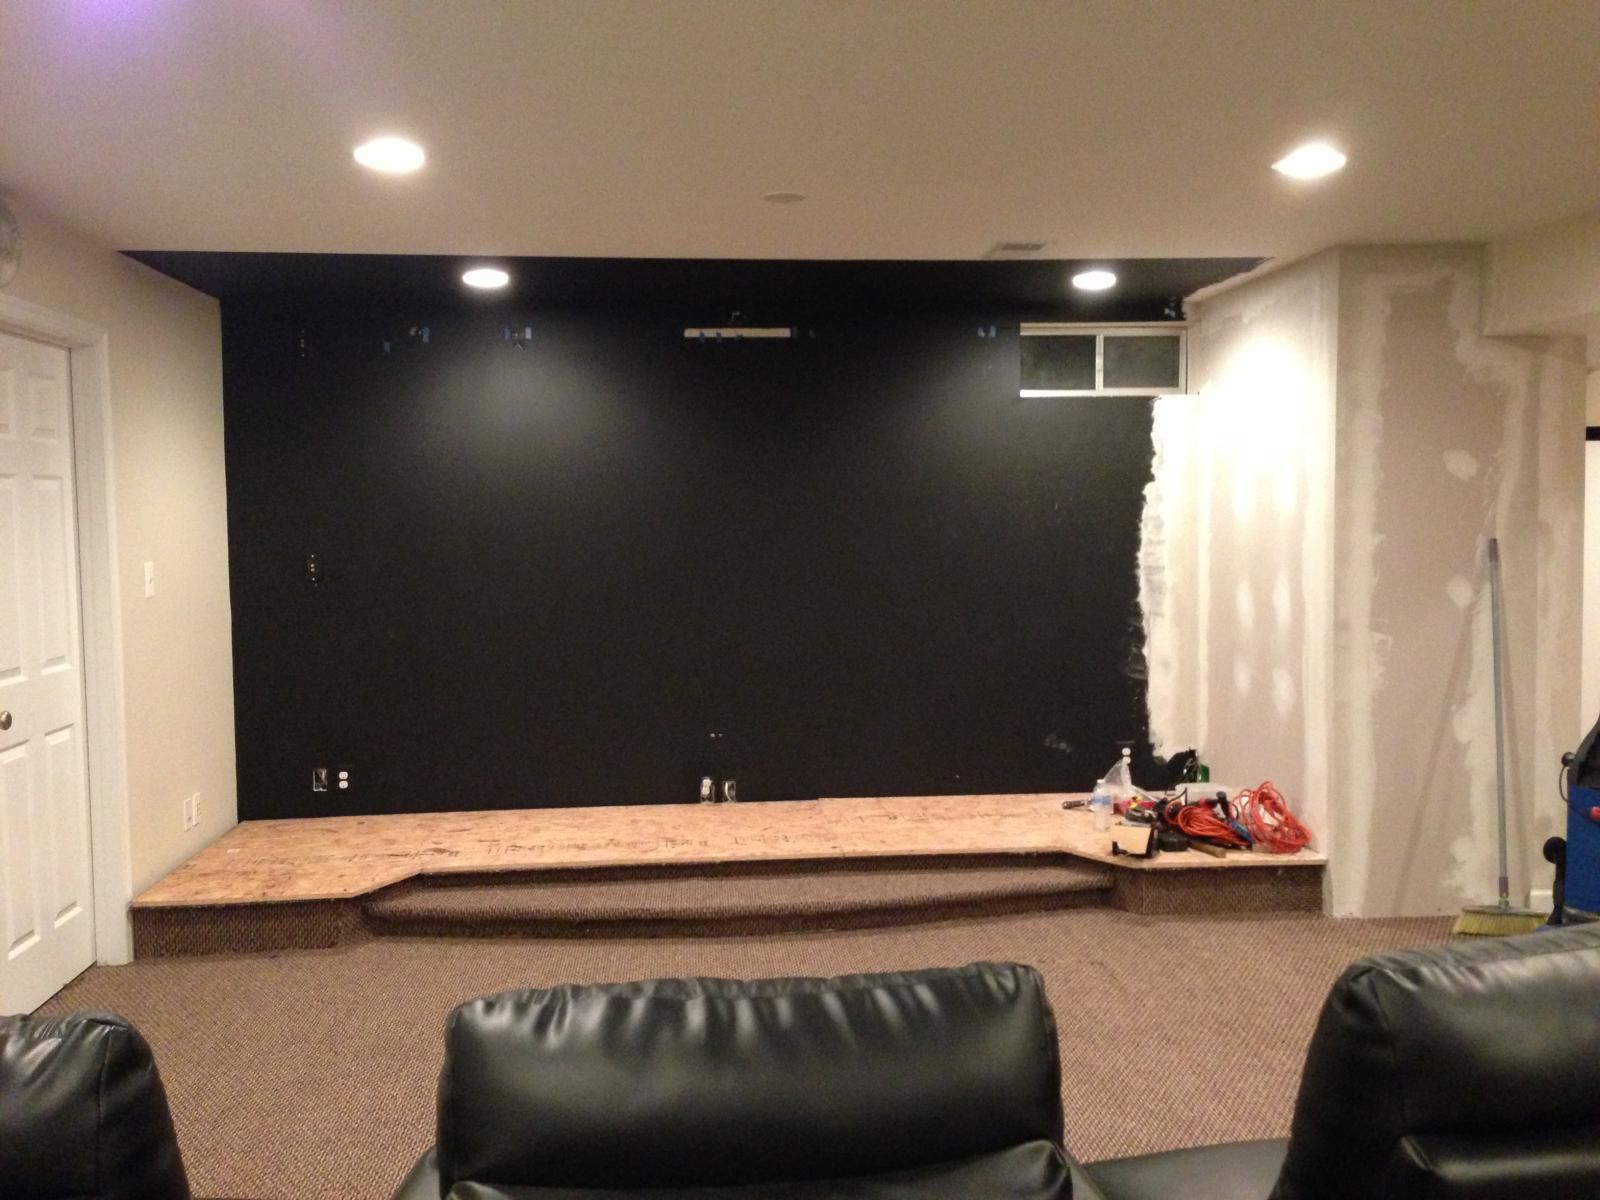 Home Theatre Setup (800 533) - Home Improvement - Pinterest - Haciendas